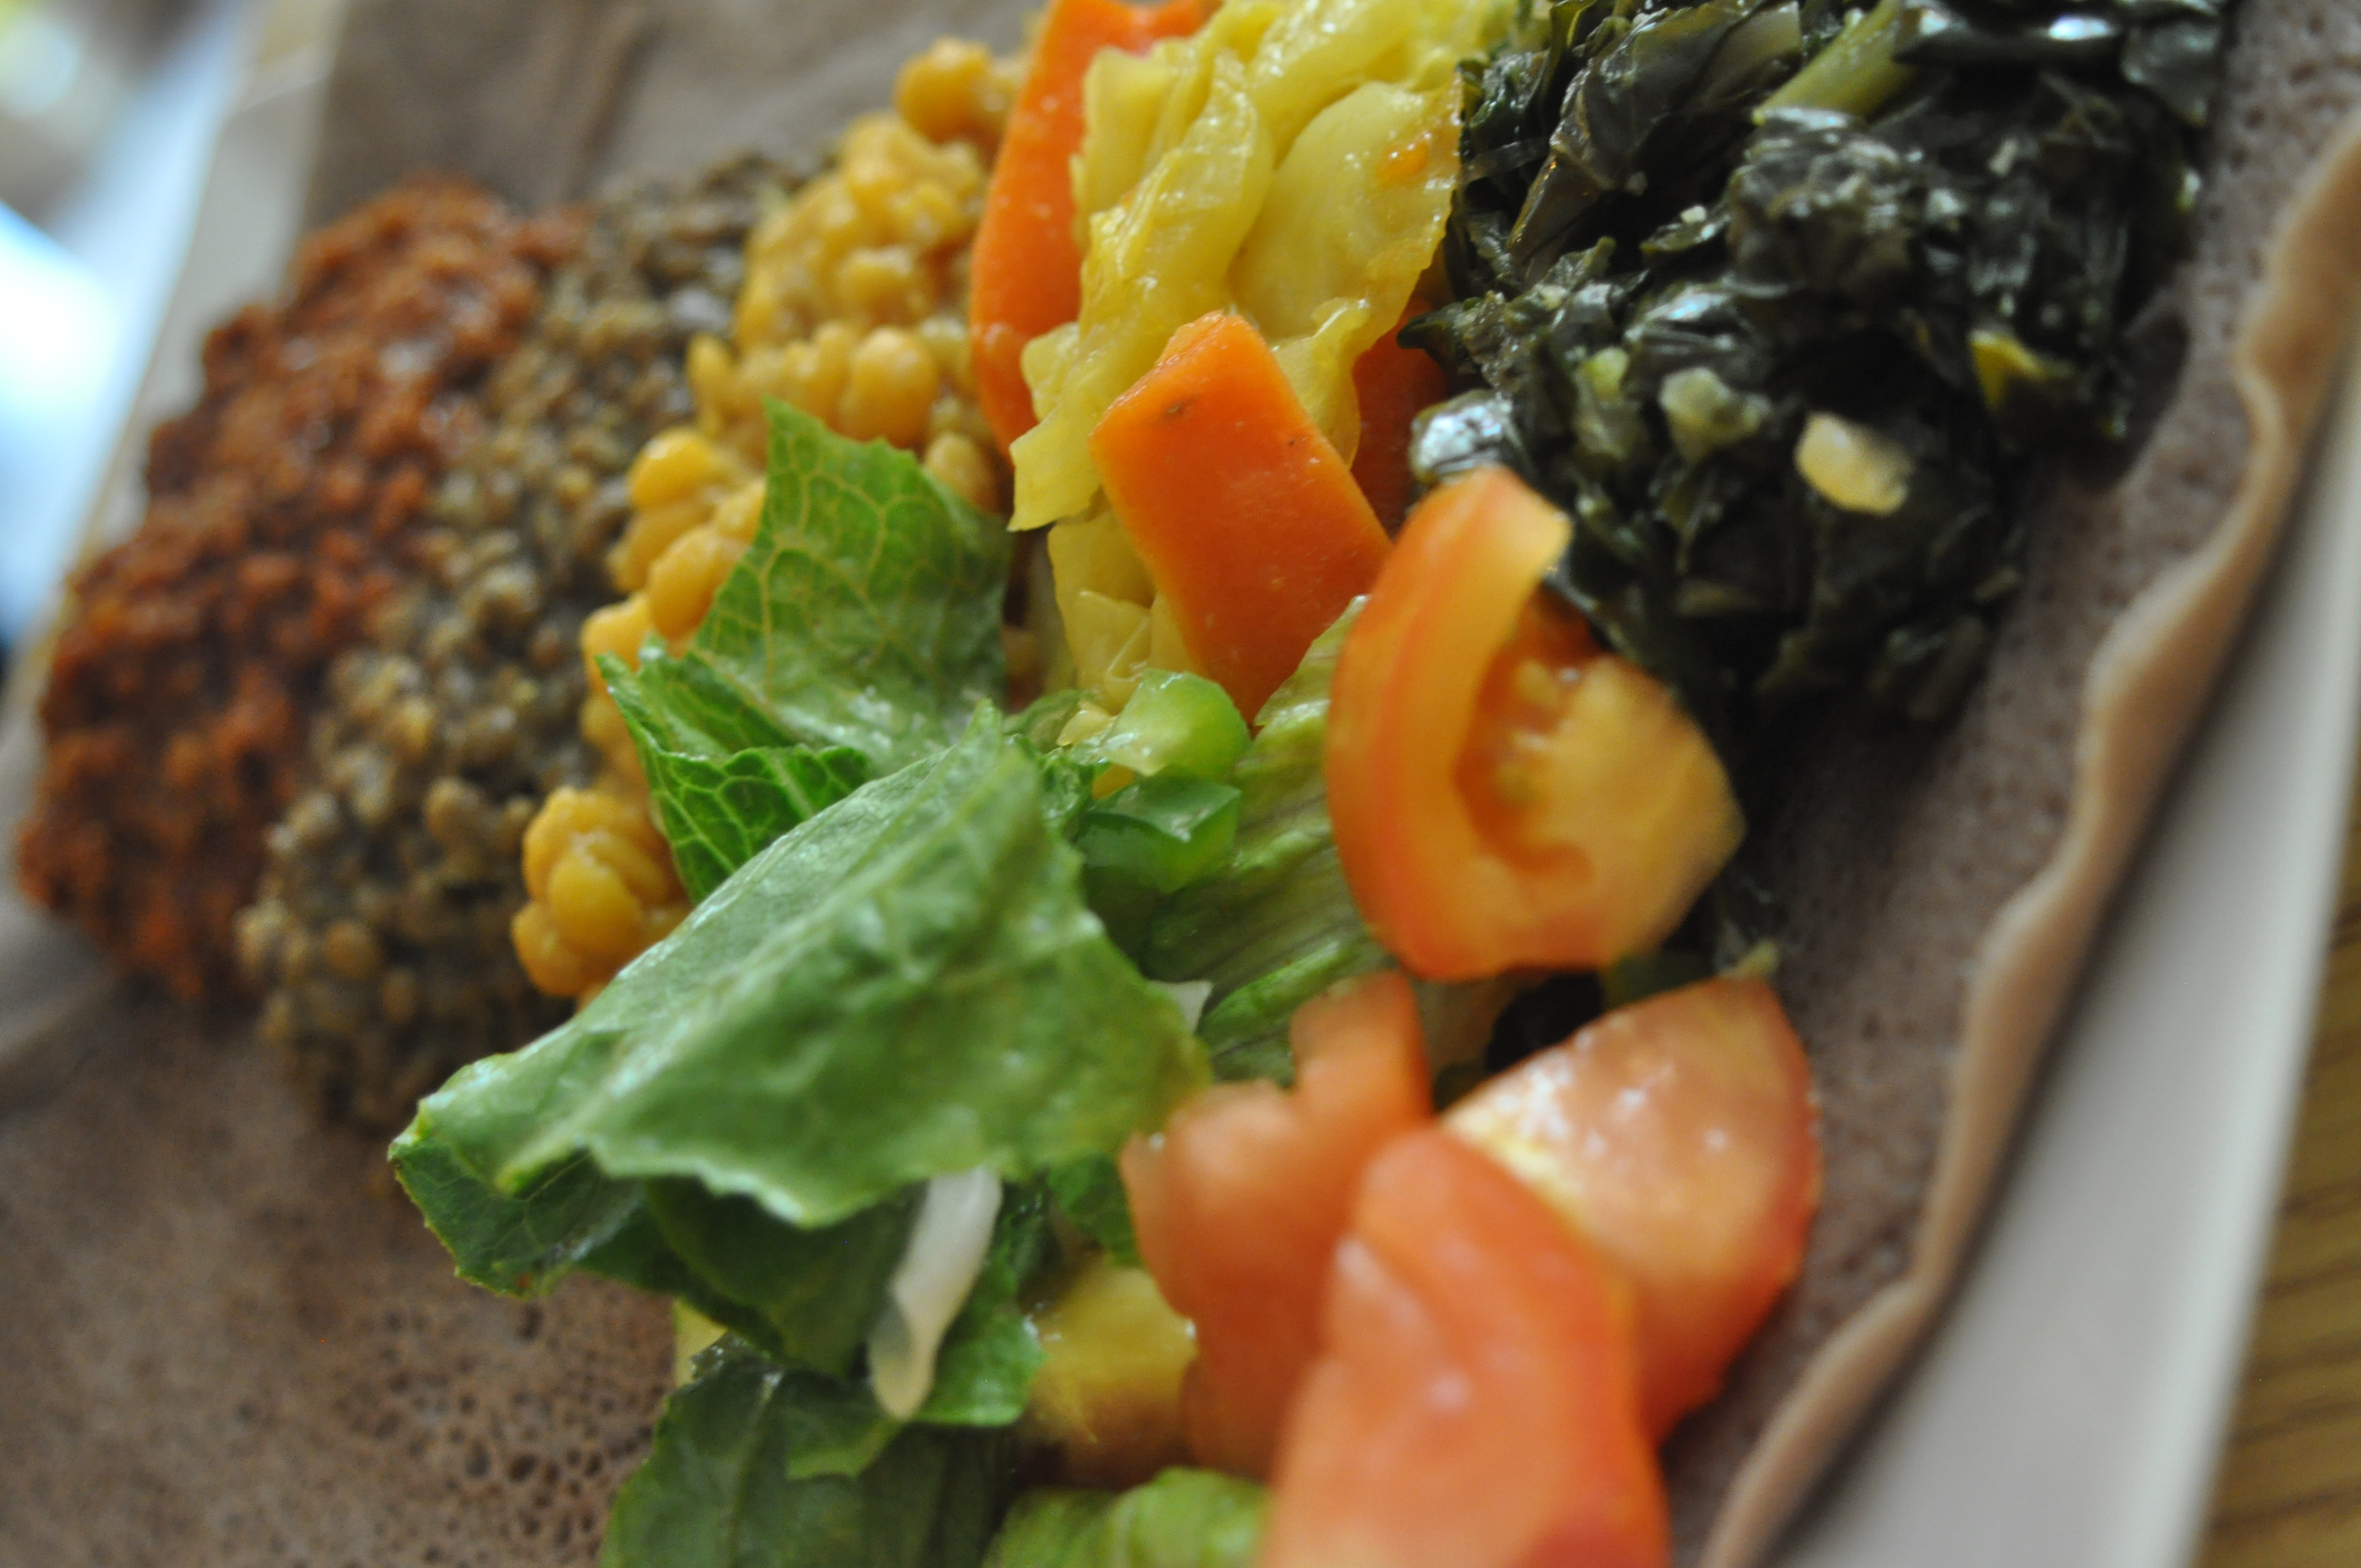 Ethiopian food is typically served on one large platter and is meant for the group to share. All food is eaten with your hands. Specifically with your right hand